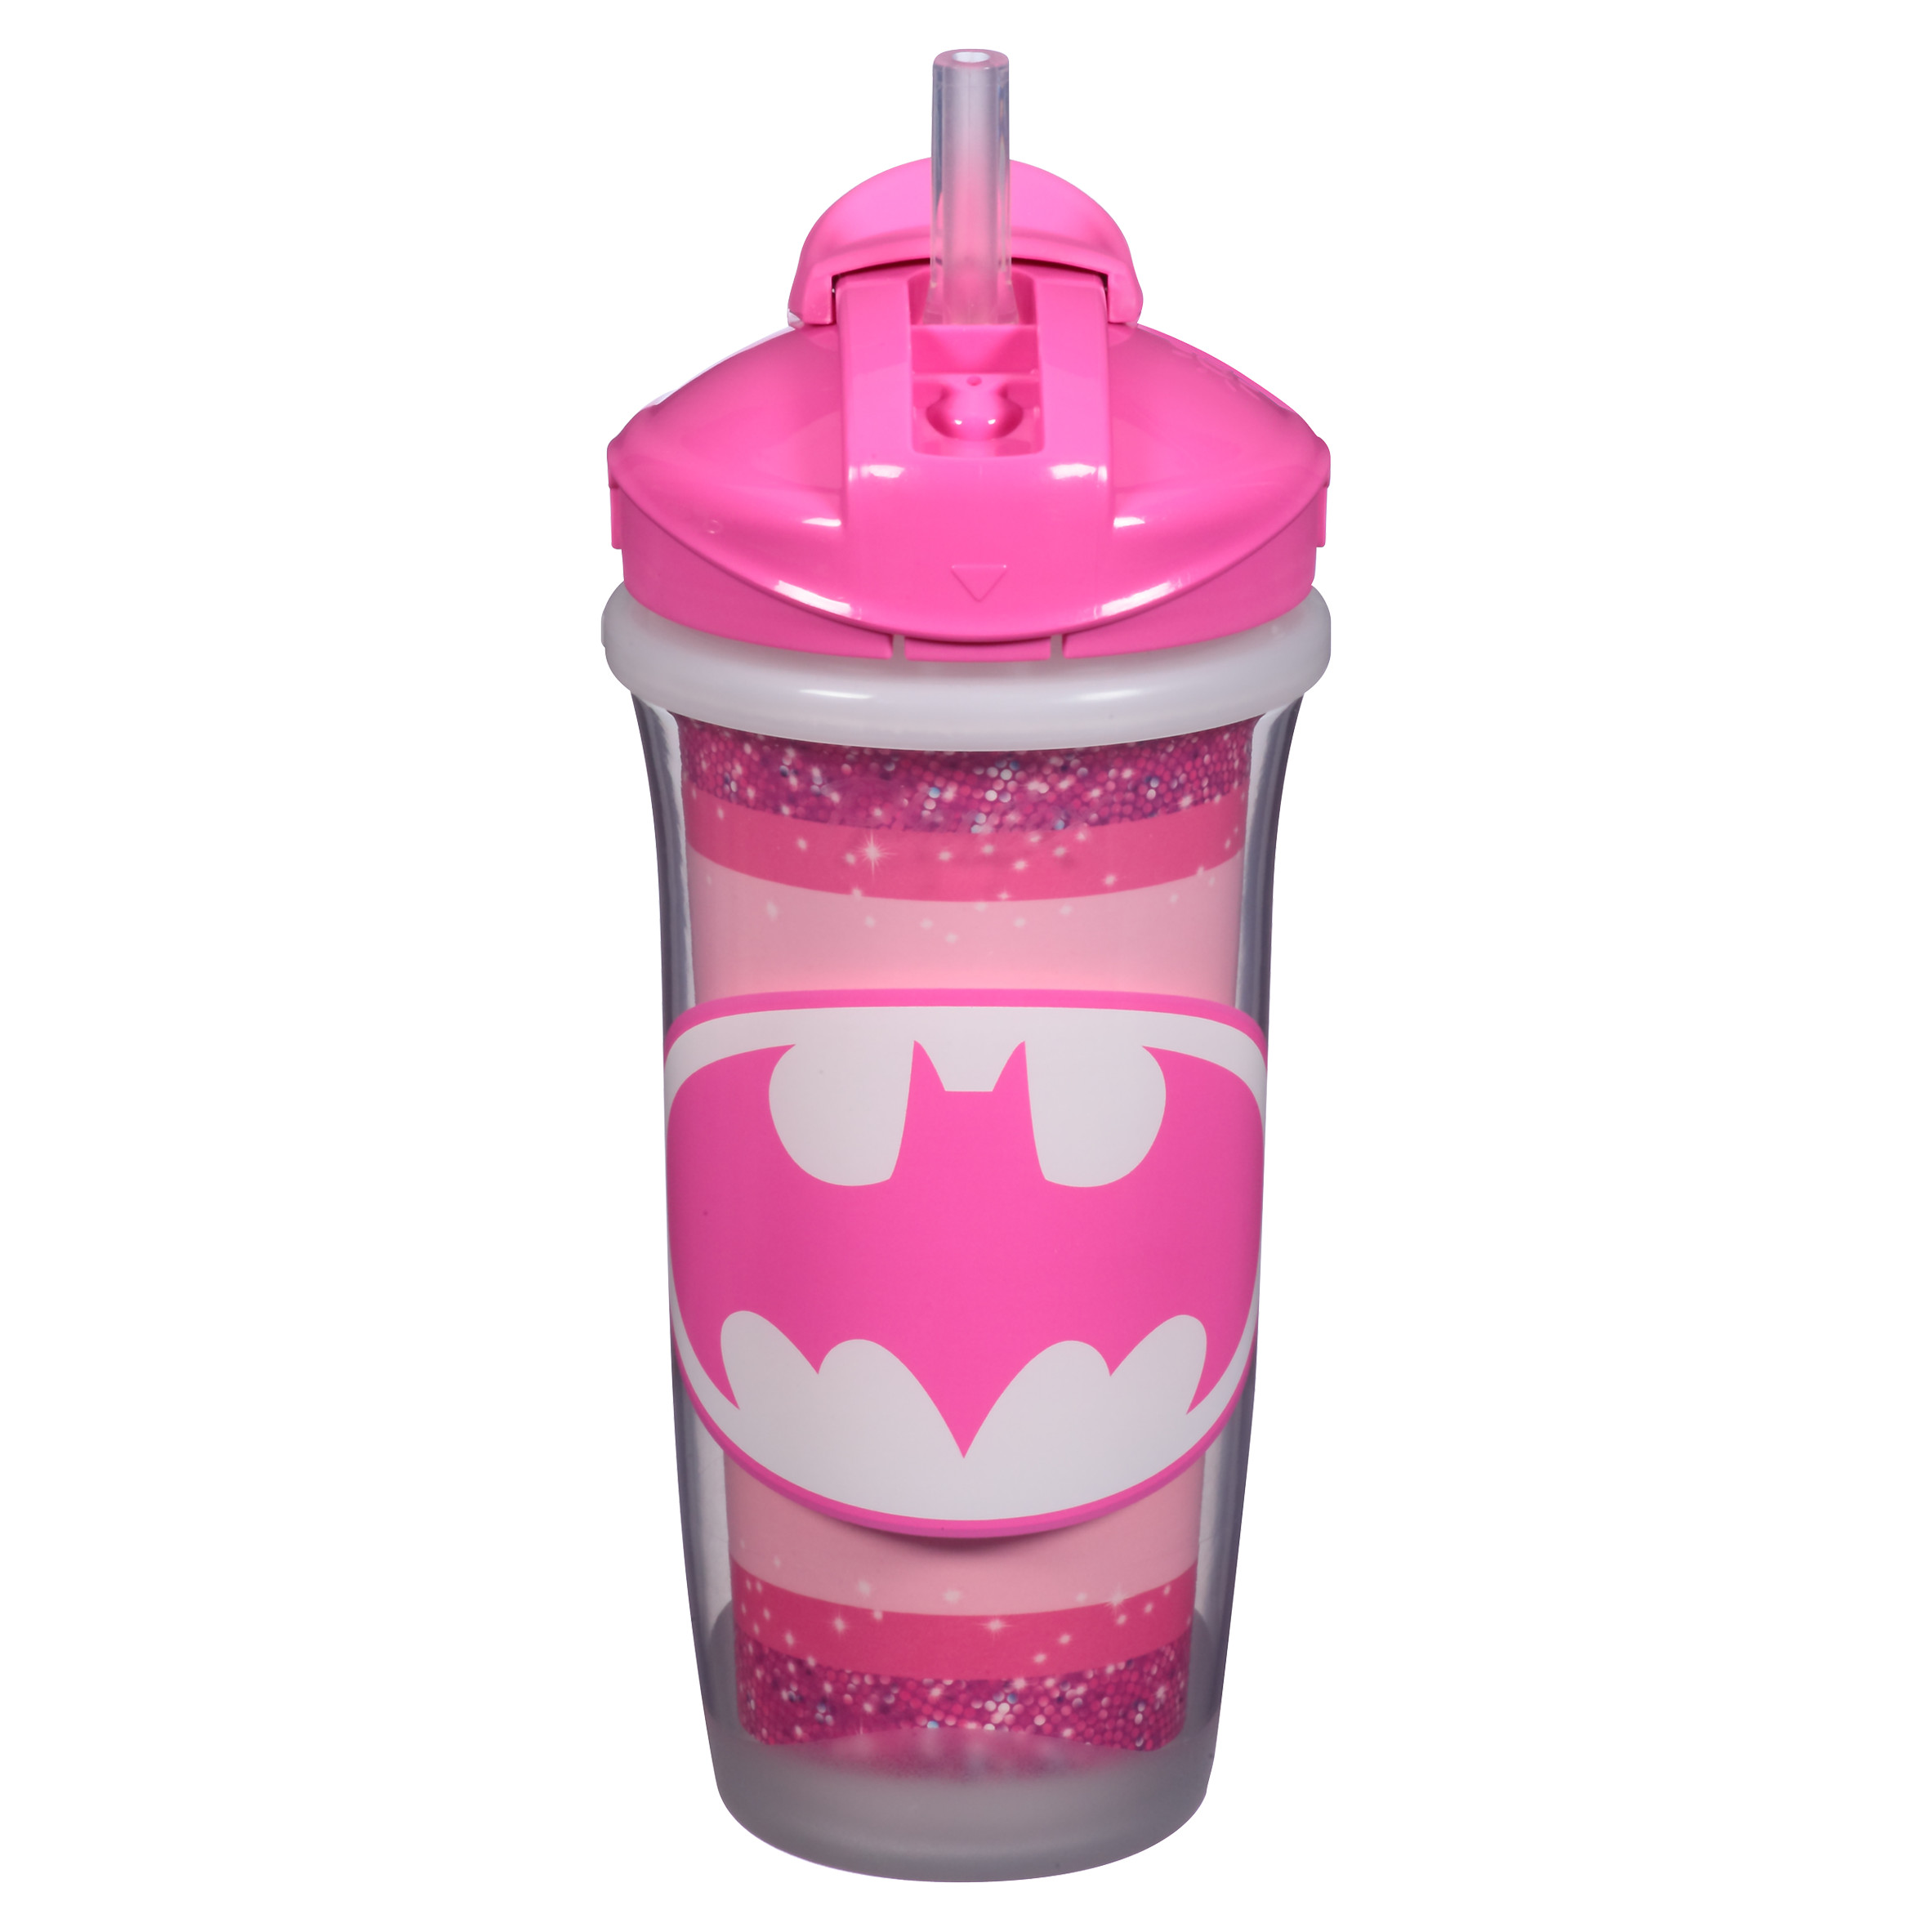 Playtex Sipsters DC Super Friends Stage 3 Insulated Straw Sippy Cup 9oz 1-Pack - ASSORTED PATTERNS